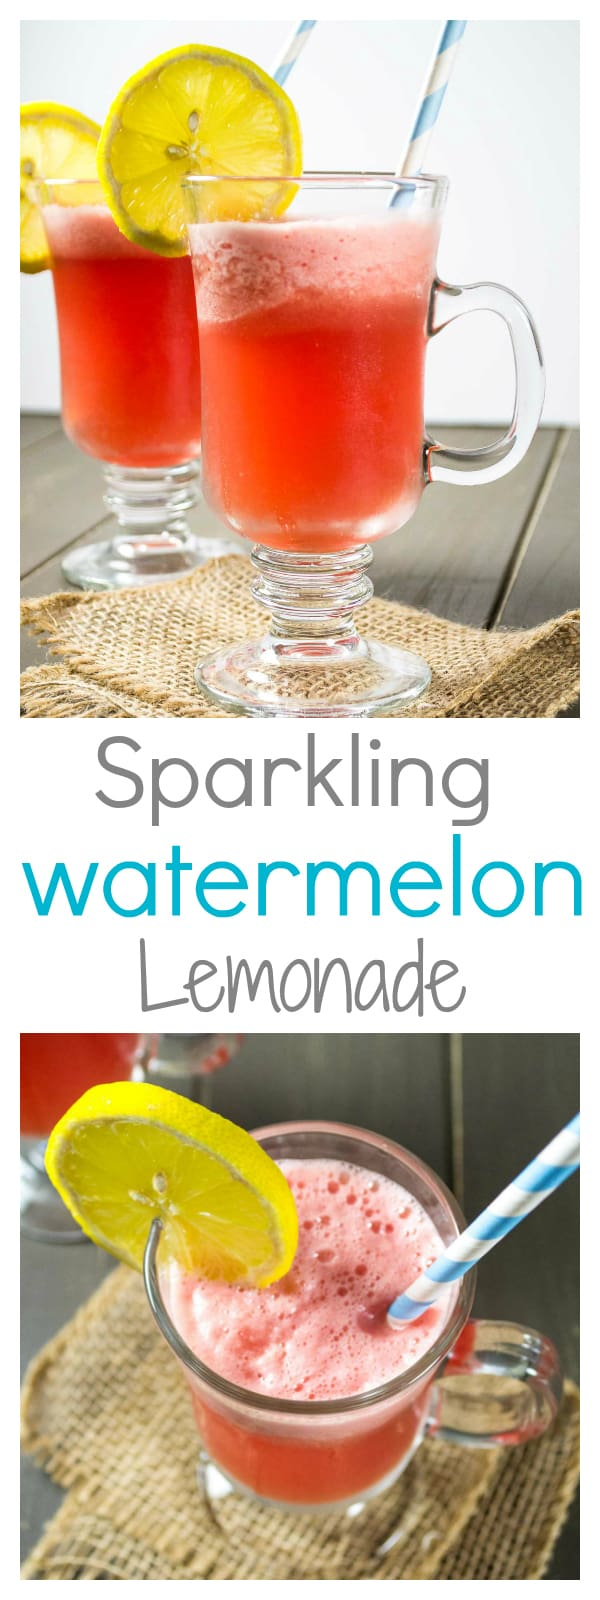 sparkling watermelon lemonade - a refreshing (and healthy) summer drink!